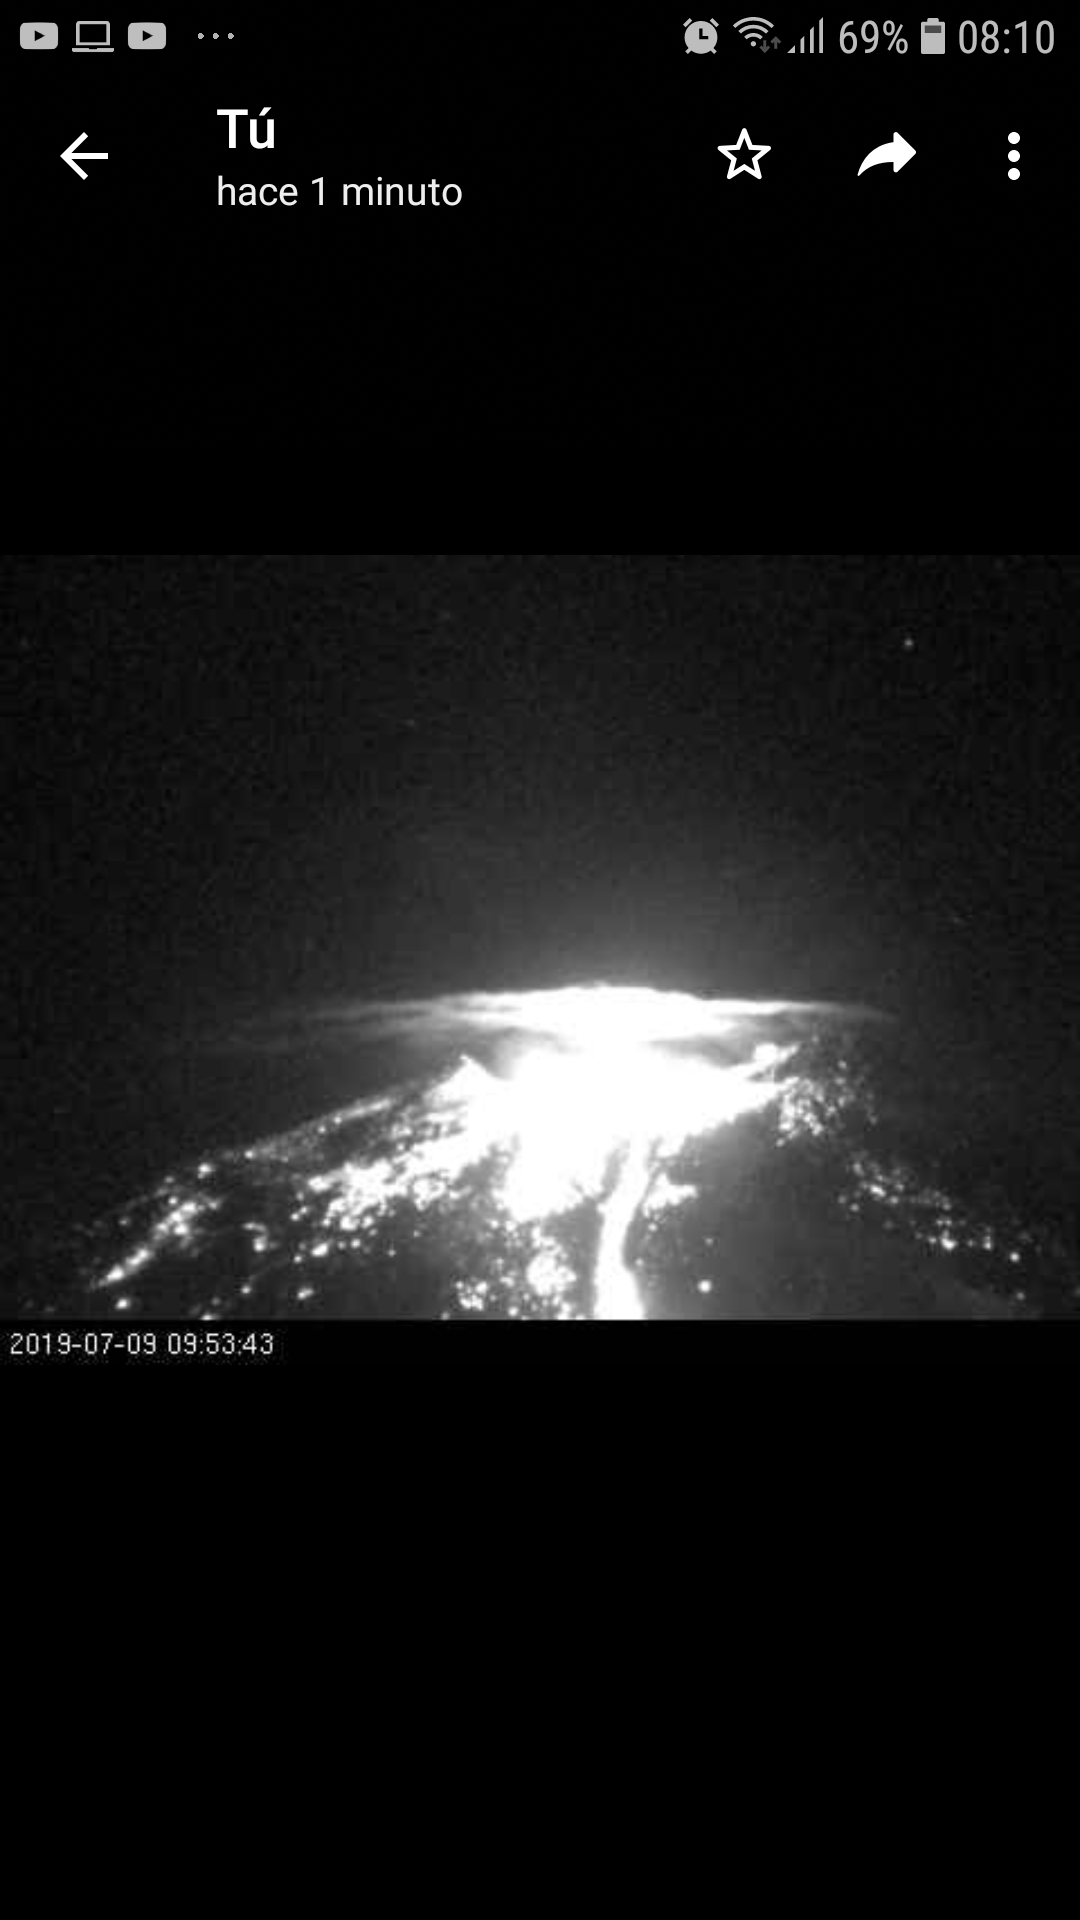 Eruption of Nevados de Chillán volcano yesterday morning (image: webcam capture, submitted by user)